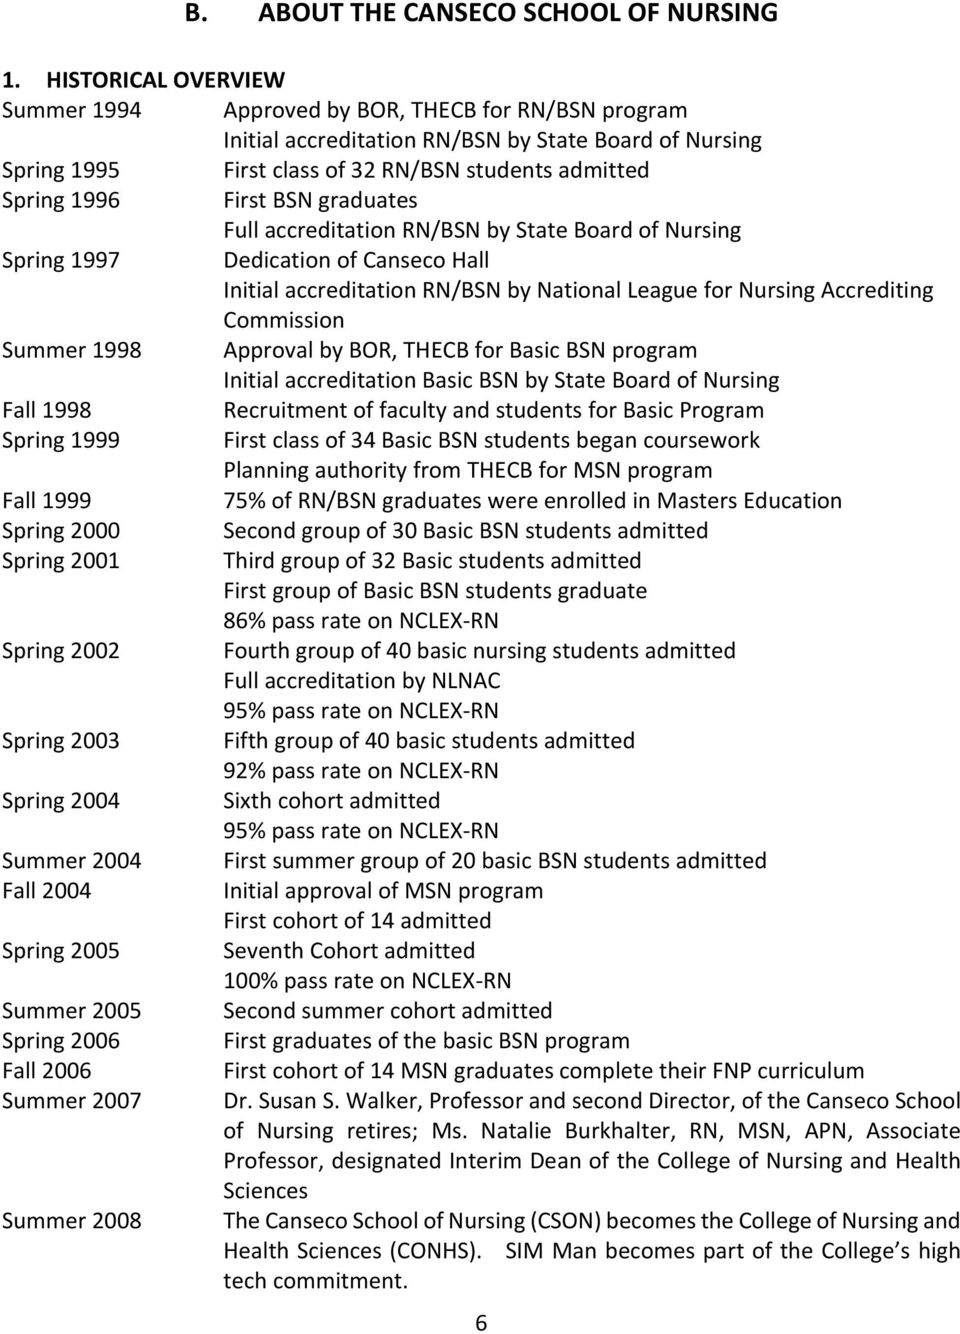 First BSN graduates Full accreditation RN/BSN by State Board of Nursing Spring 1997 Dedication of Canseco Hall Initial accreditation RN/BSN by National League for Nursing Accrediting Commission